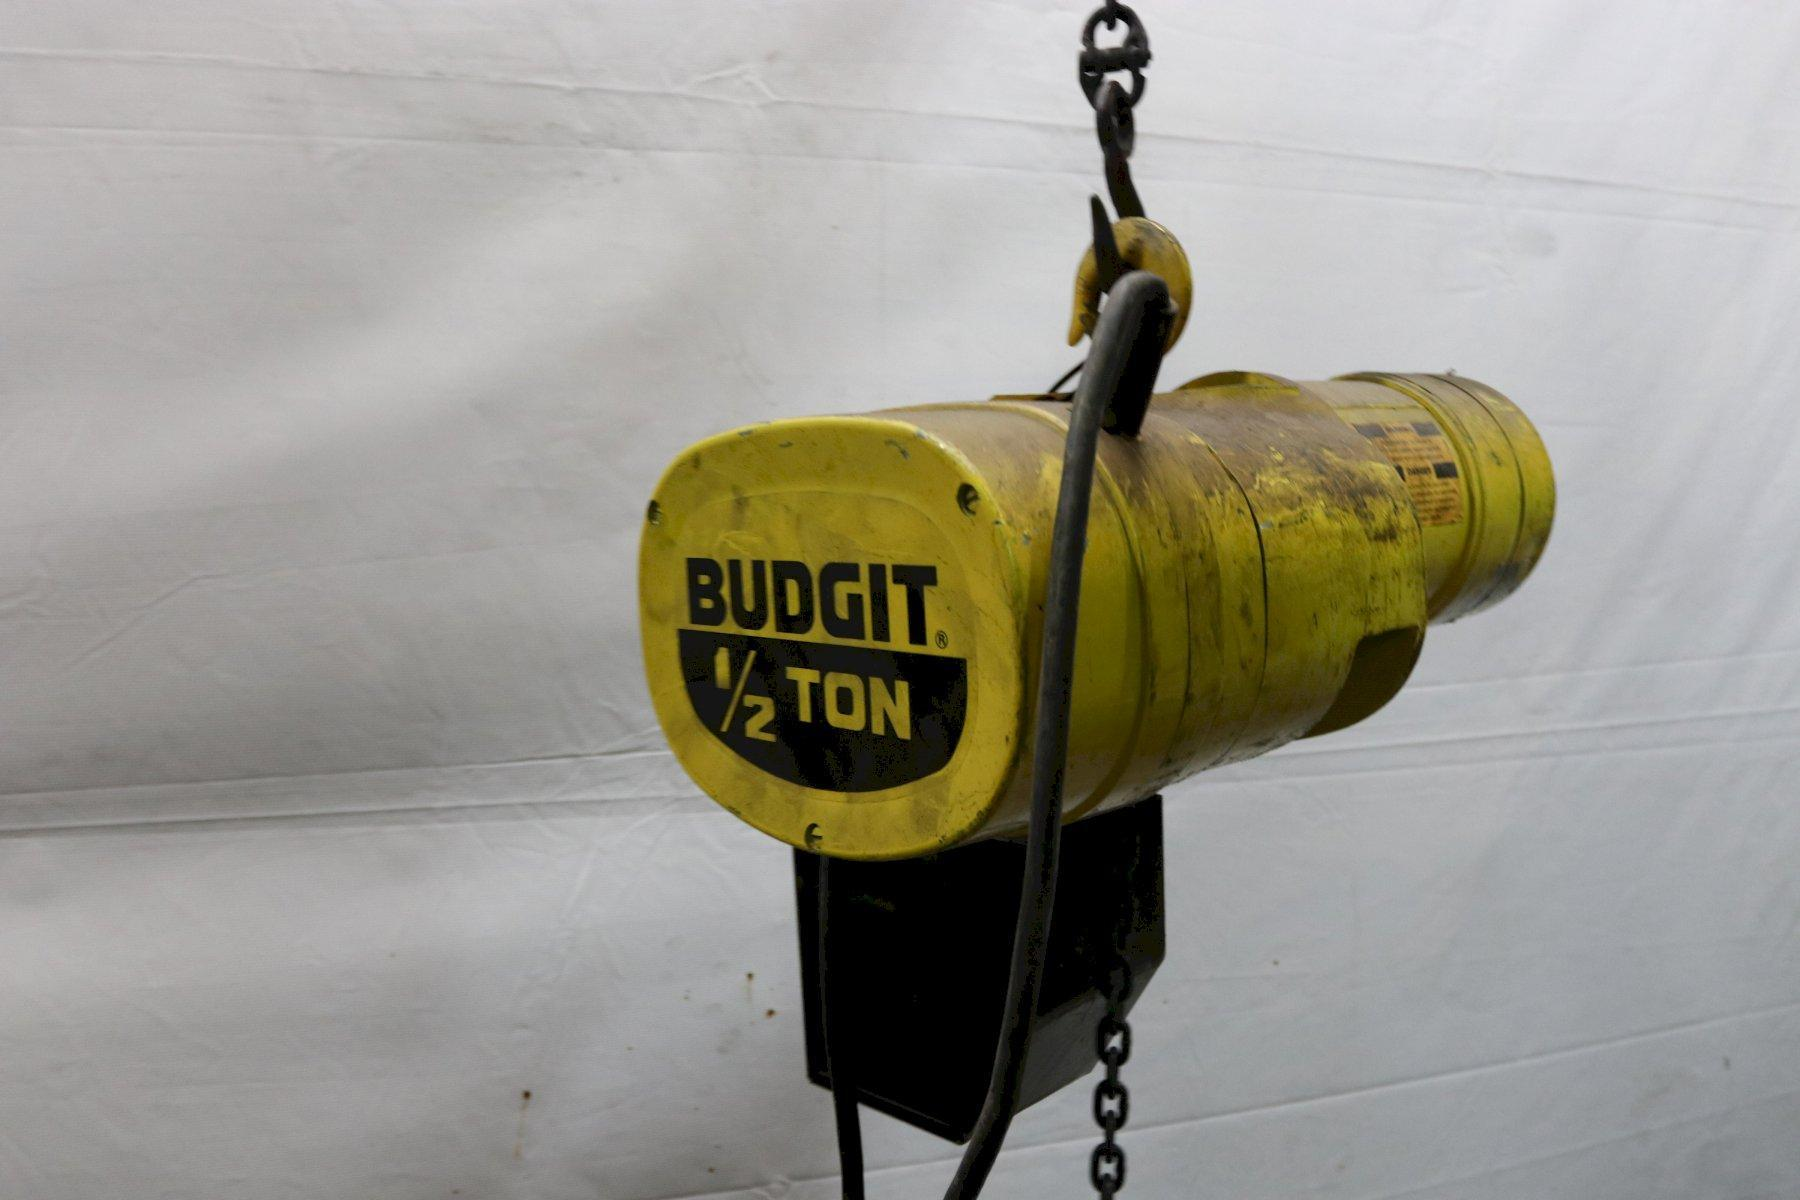 1/2 TON BUDGIT ELECTRIC POWERED CHAIN HOIST: STOCK #11976